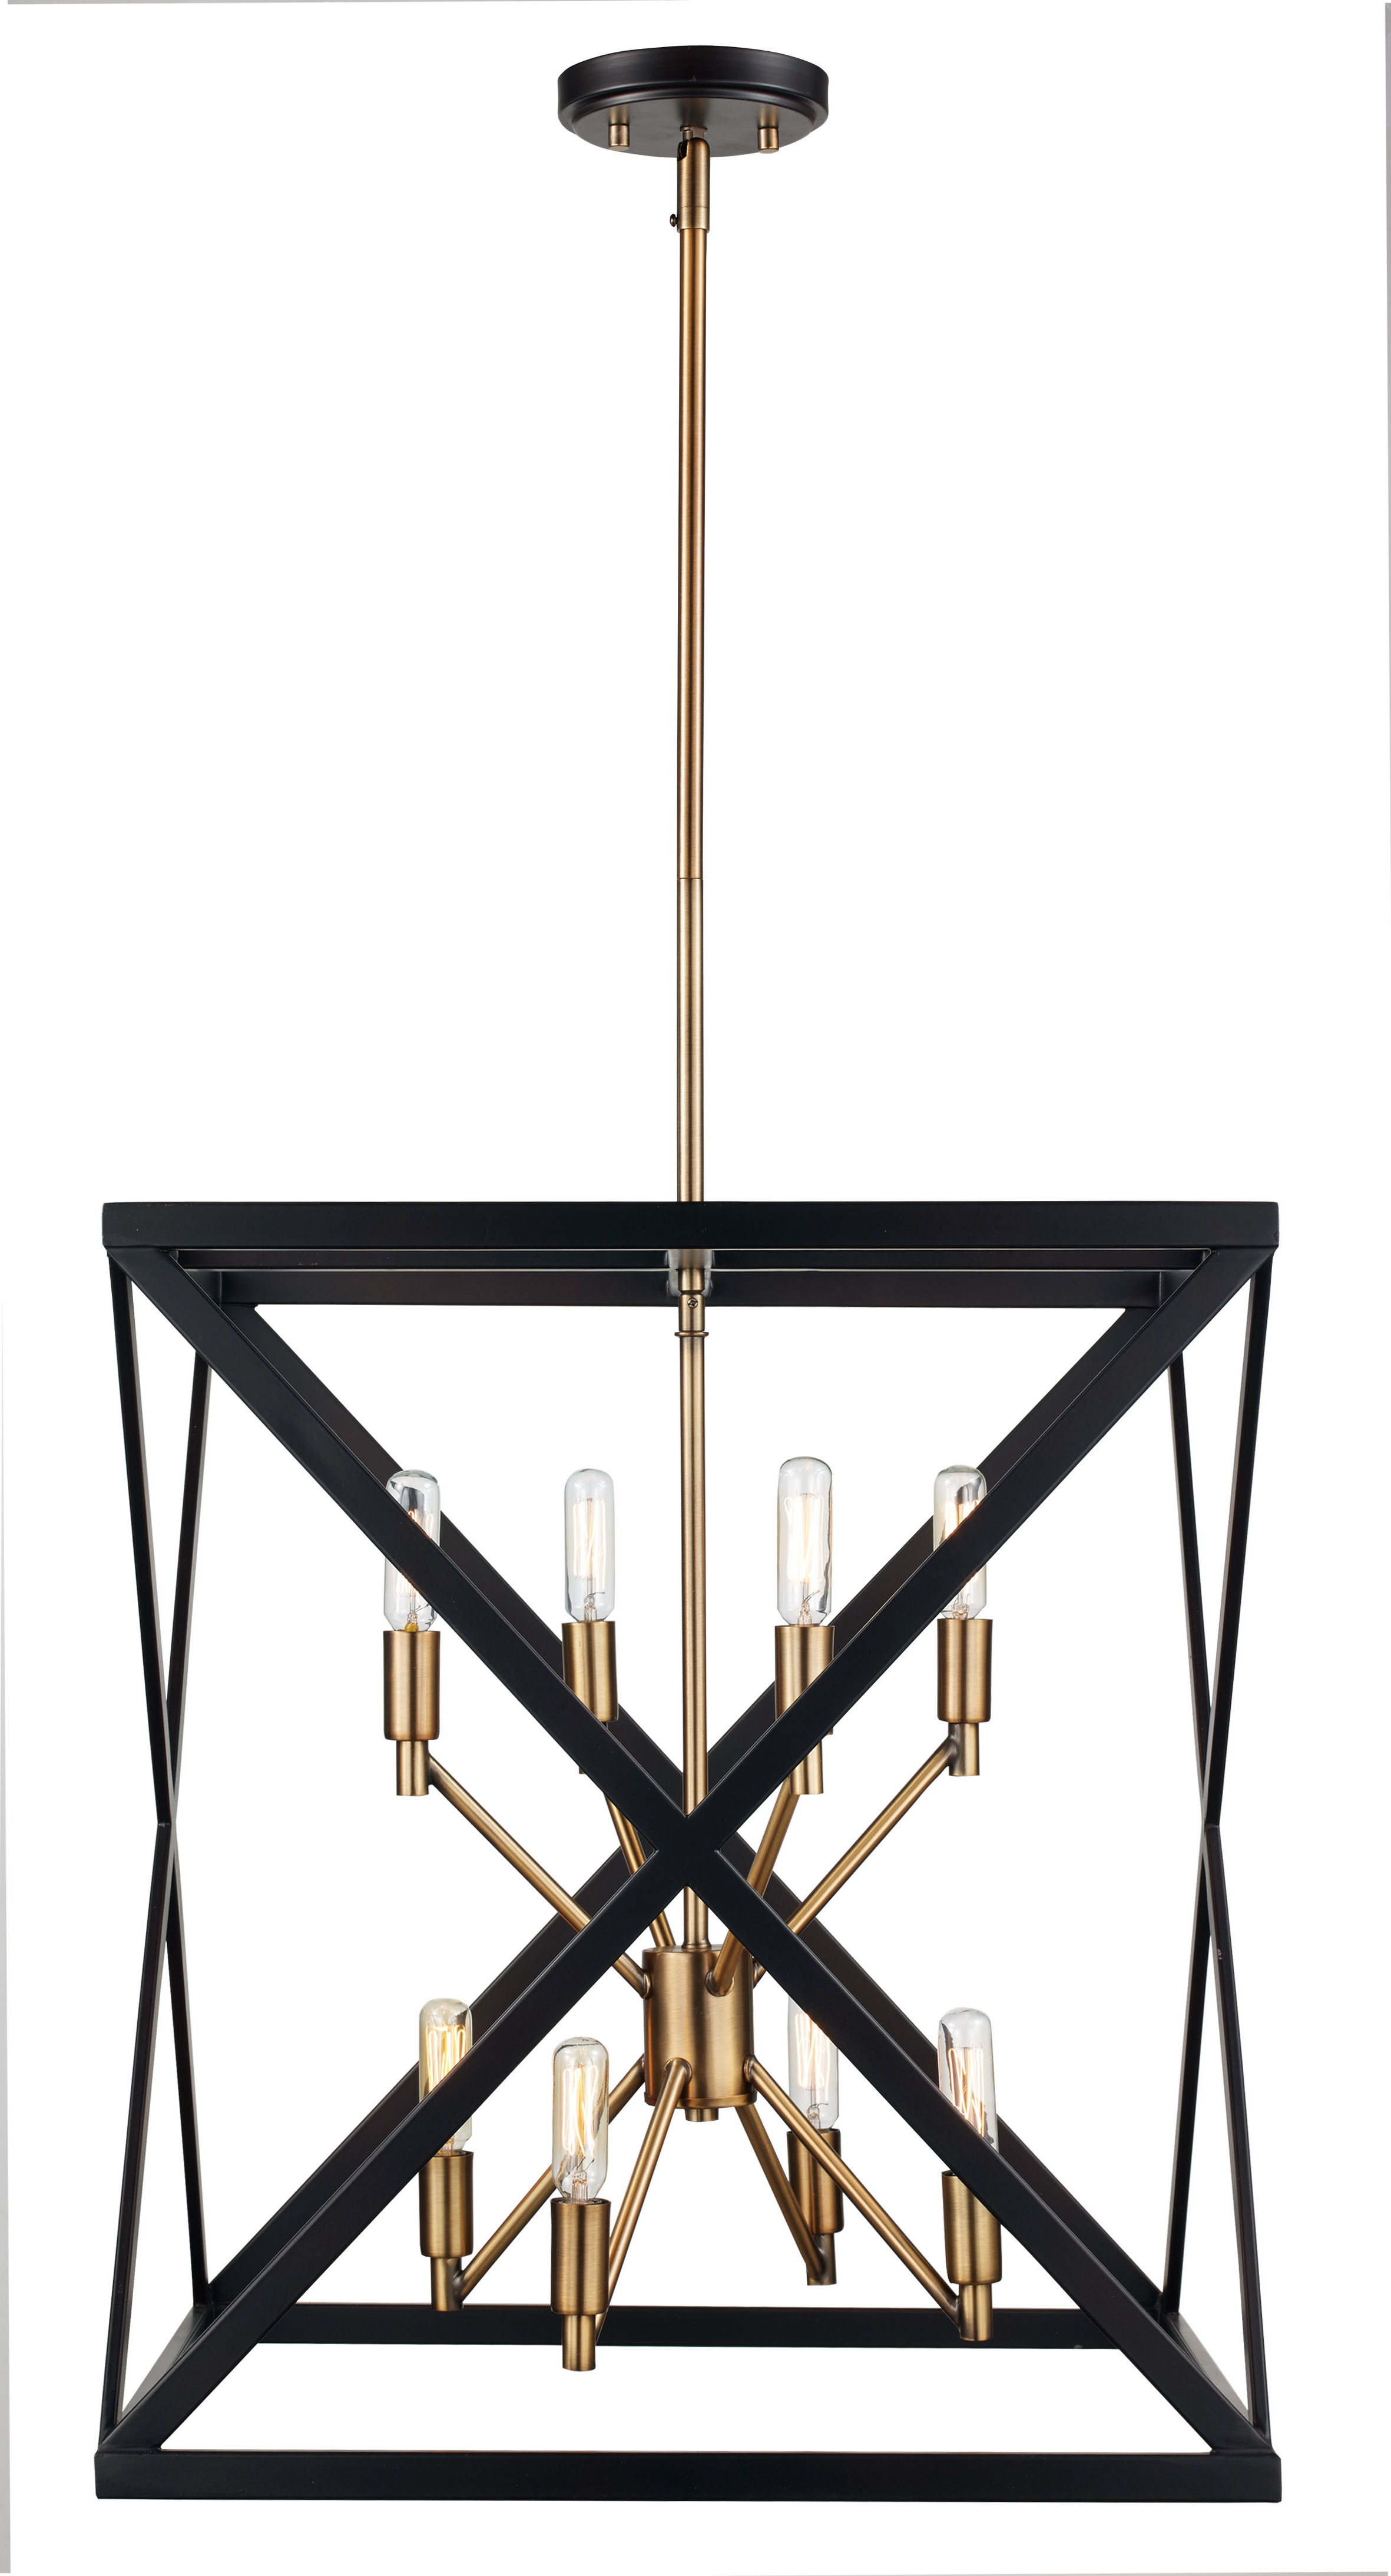 Widely Used Tanksley 8 Light Square/rectangle Chandelier Pertaining To Delon 4 Light Square Chandeliers (View 20 of 20)